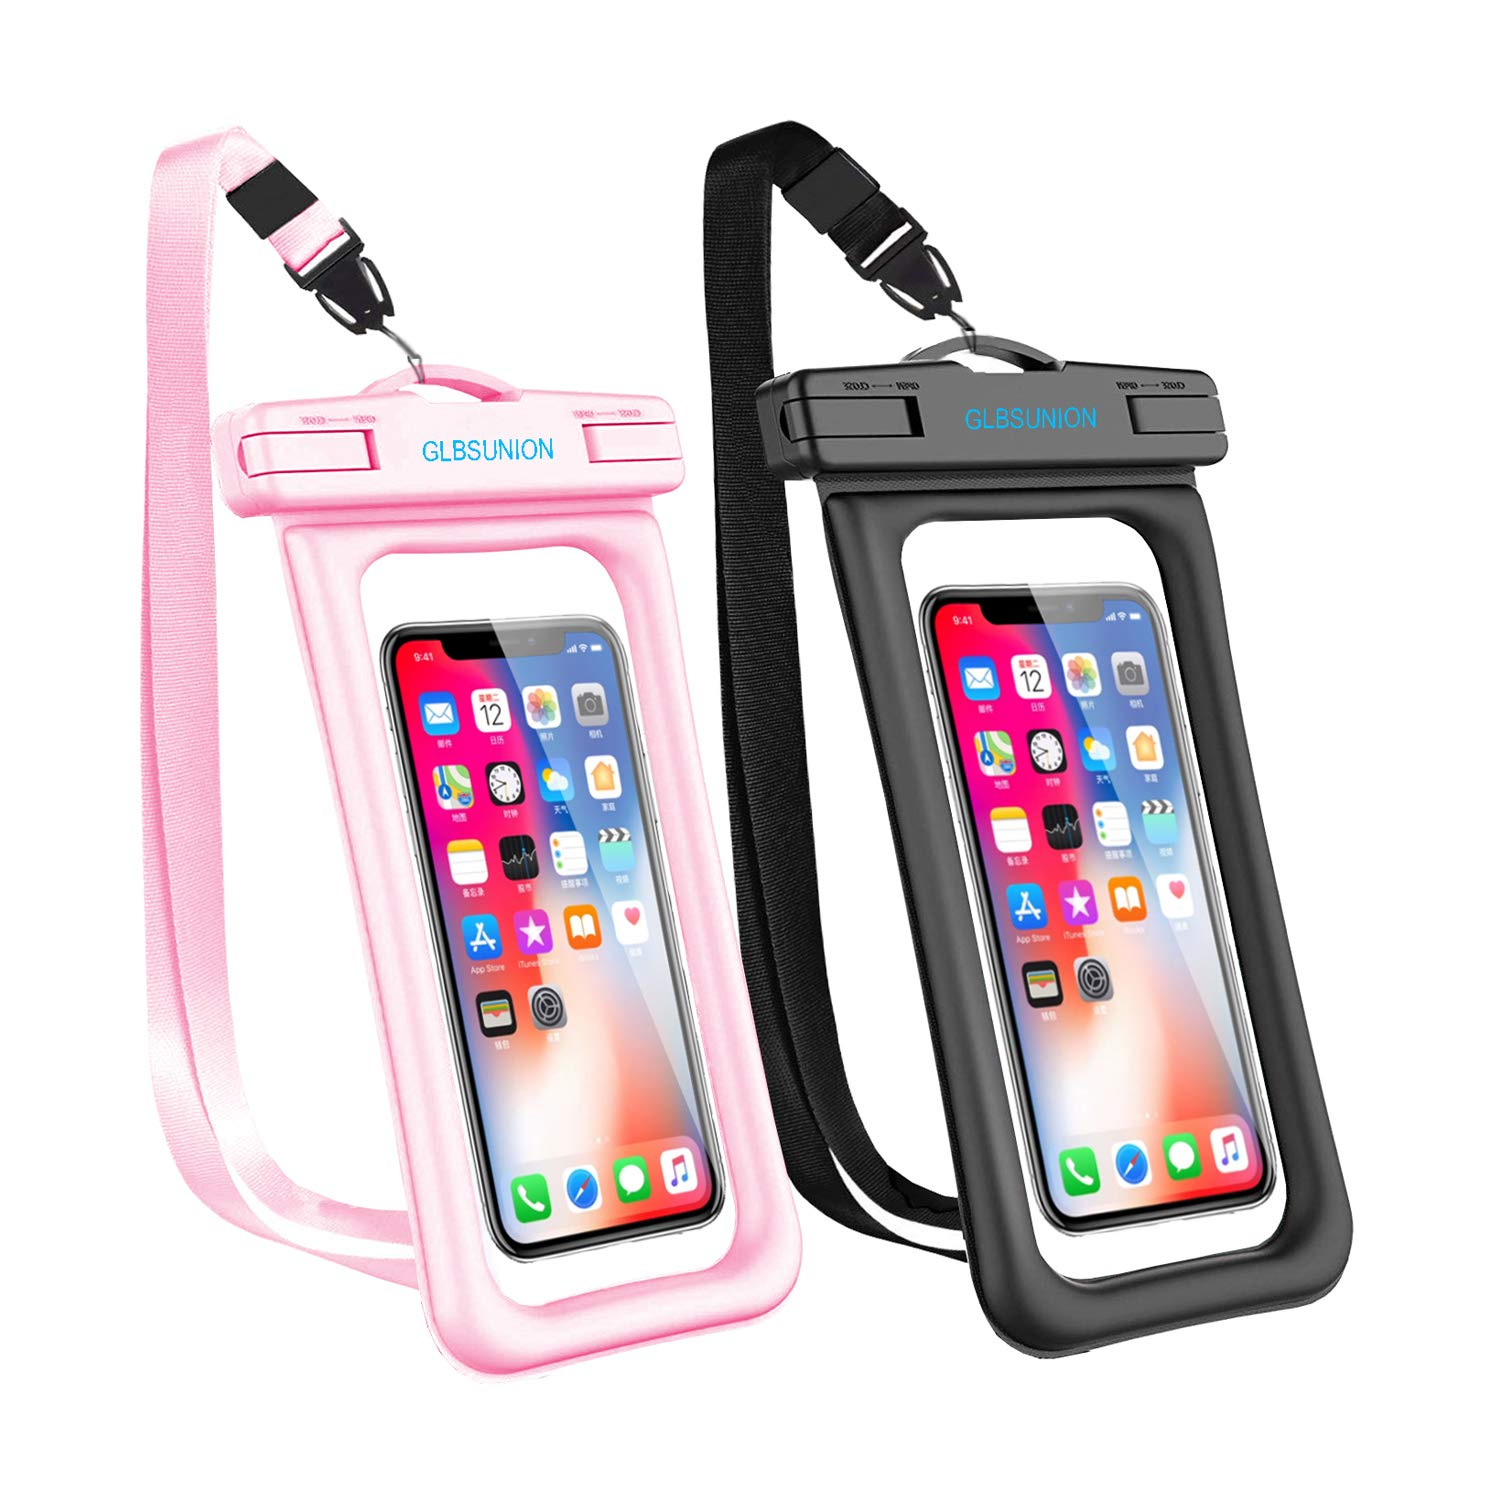 GLBSUNION Waterproof floating phone pouch